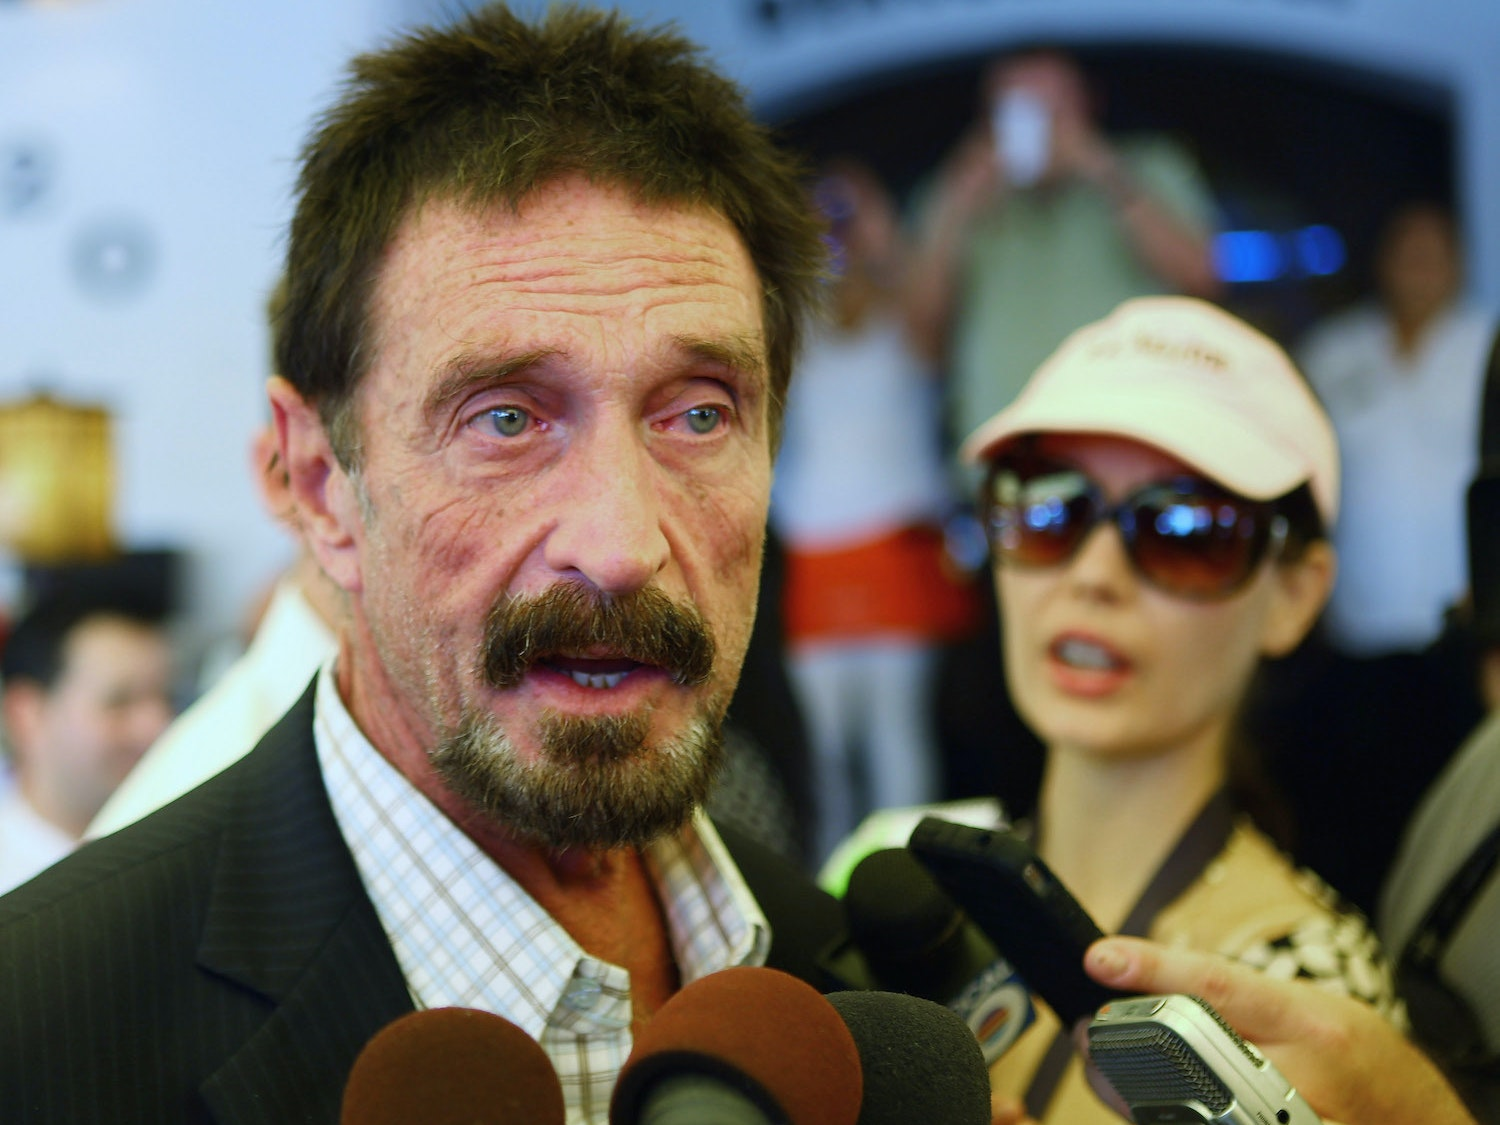 John McAfee challenges redditors to a coding challenge.